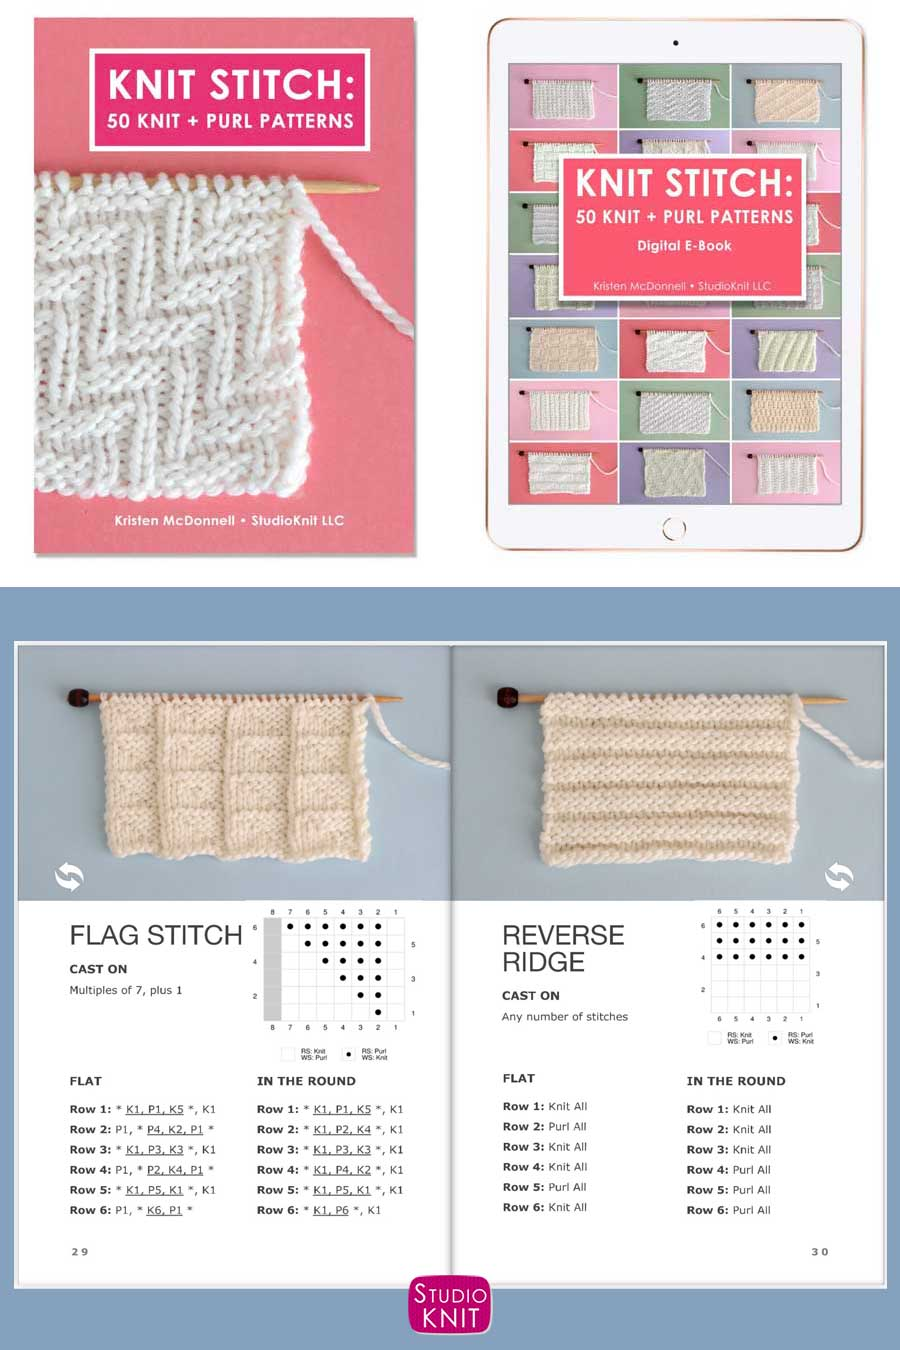 Knit Stitch Pattern Book with Flag and Reverse Rib Stitch